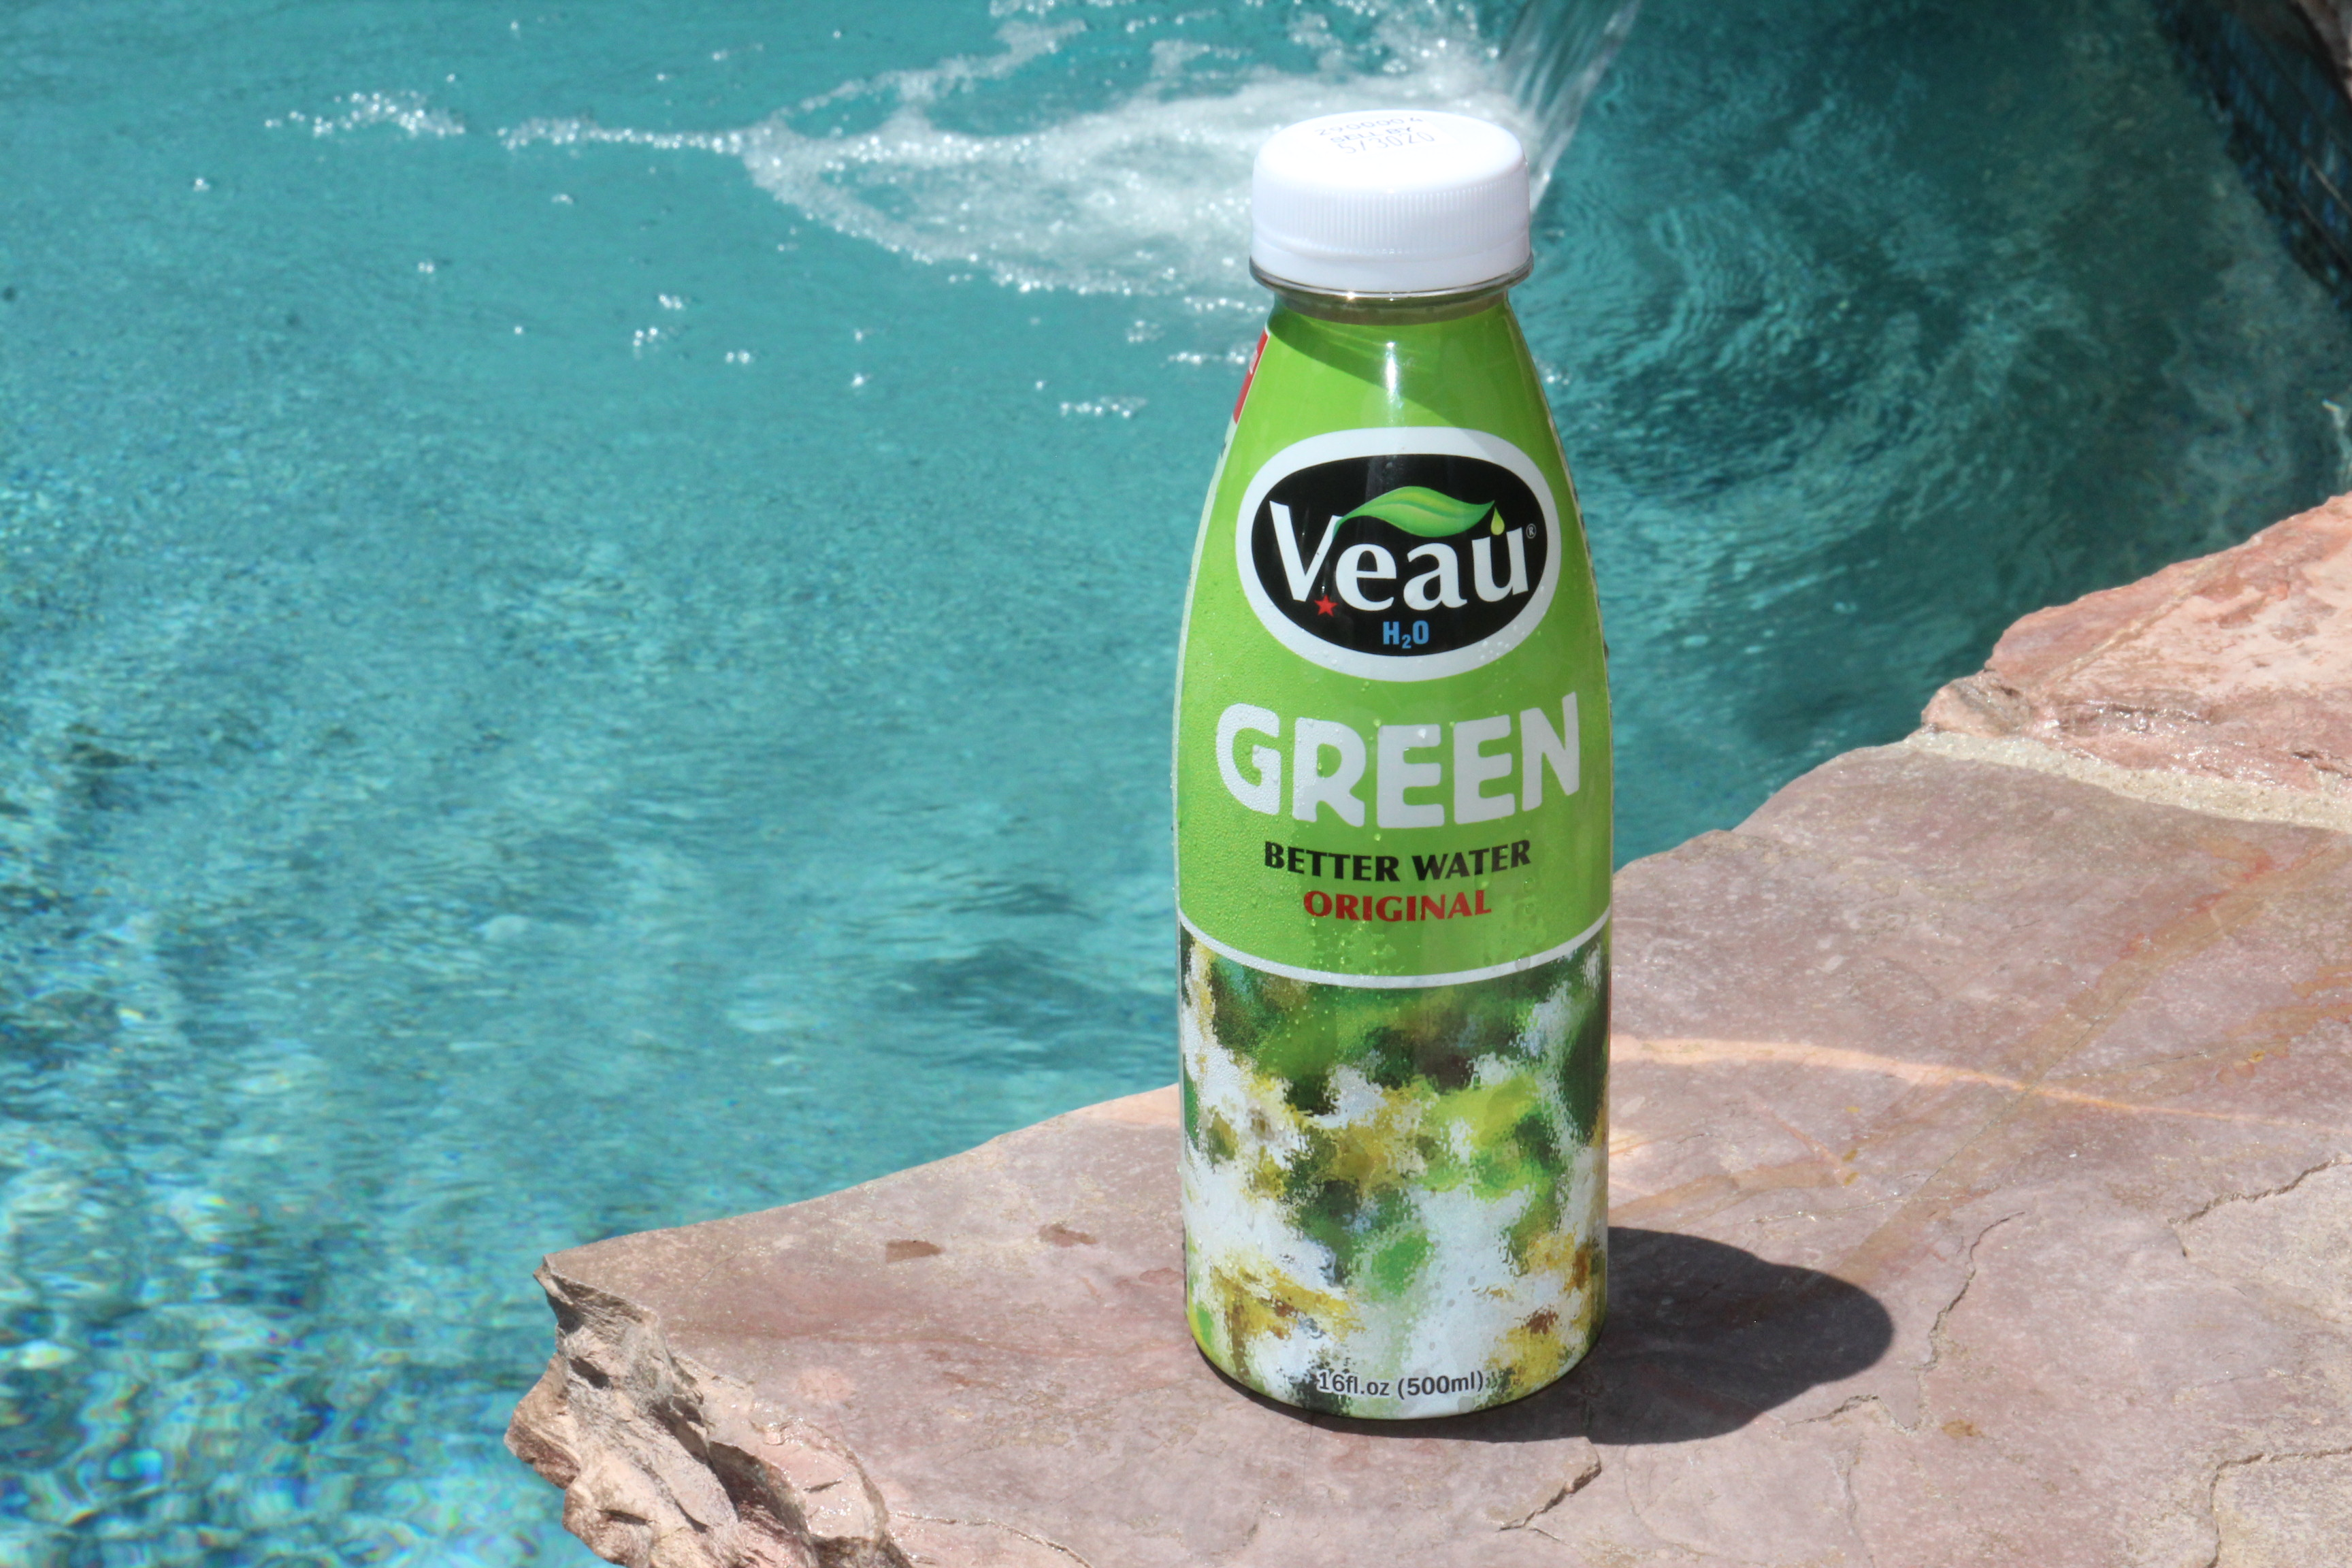 5.Veau-Green-Pool